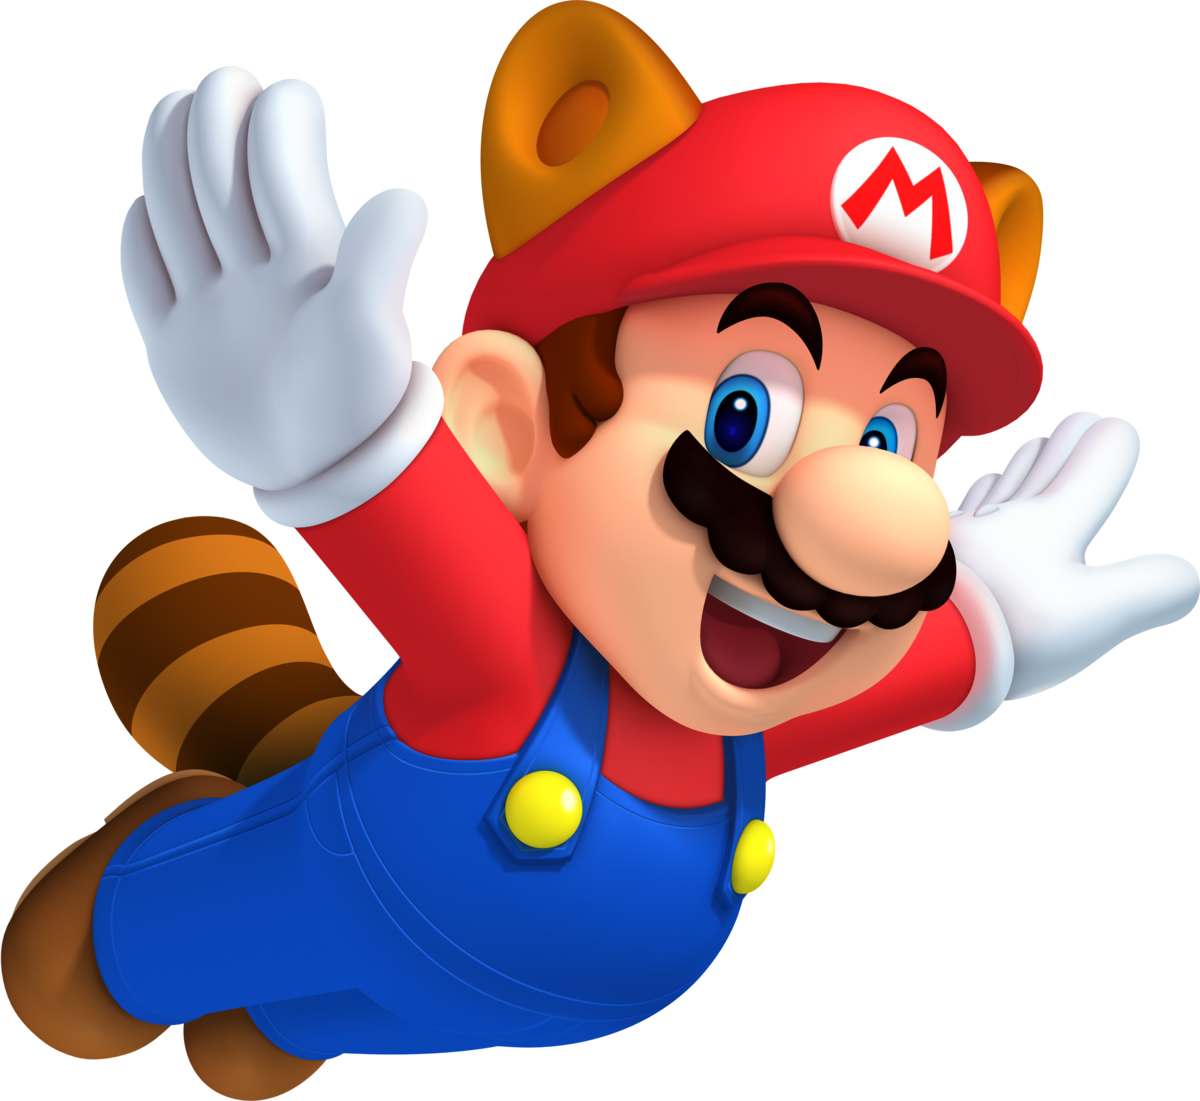 Mario flying from left to right with a racoon tail and ears from Super Mario Bros. 3